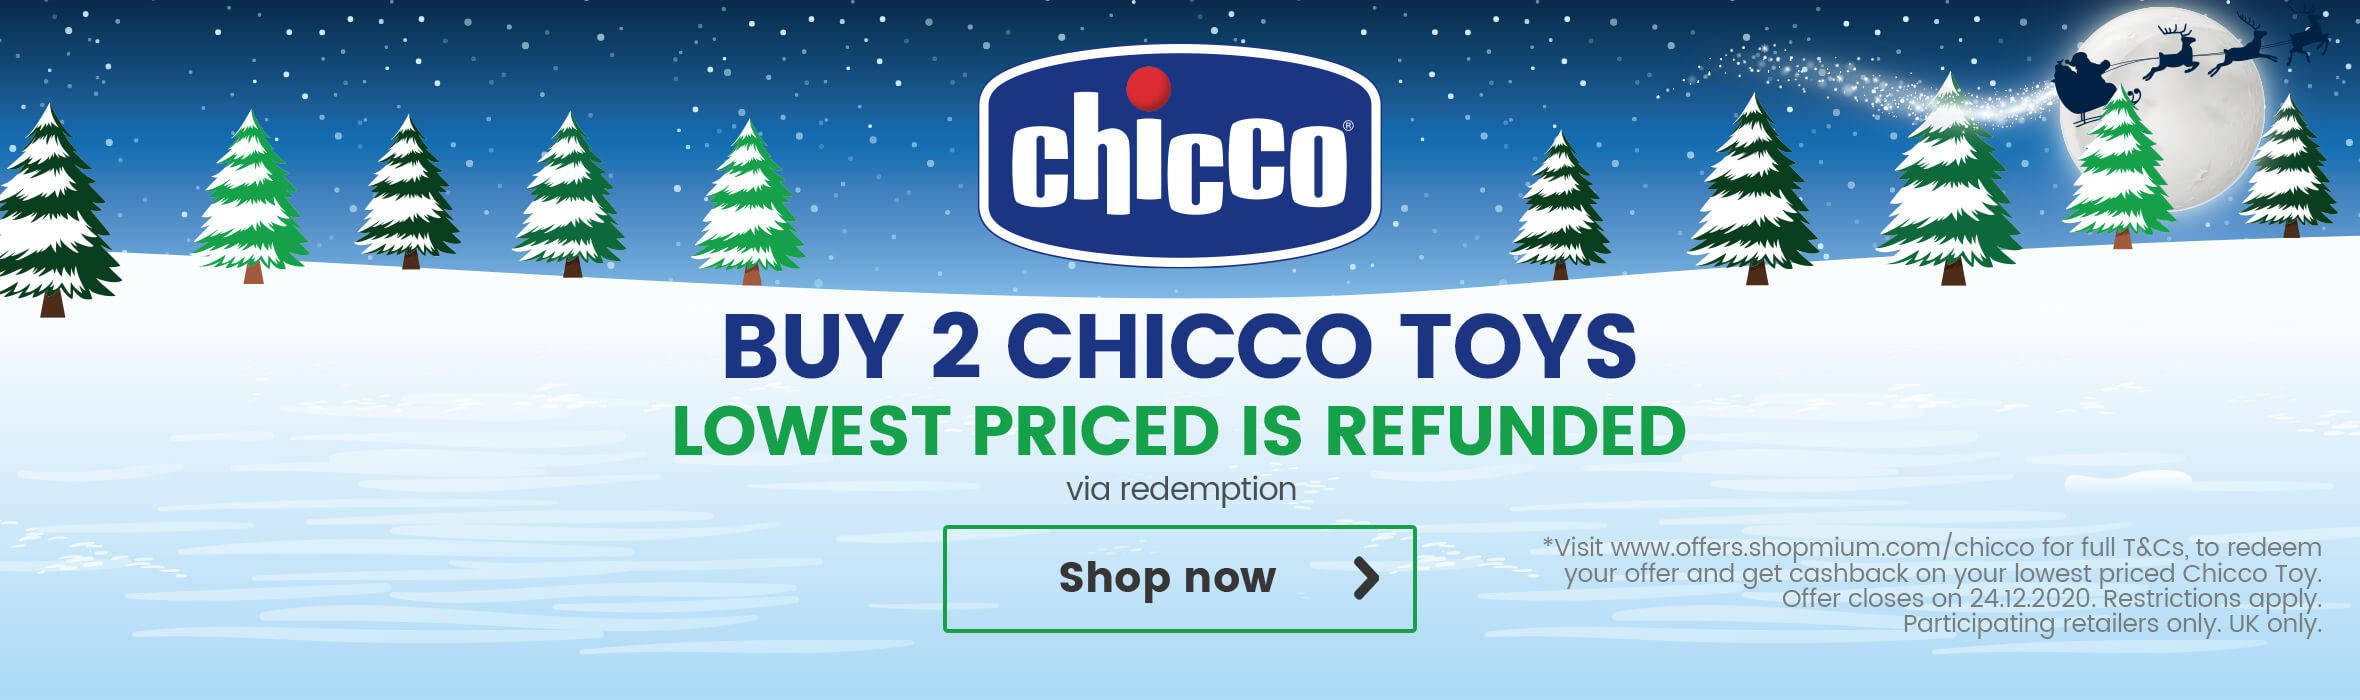 Buy two get one refunded on Chicco toys